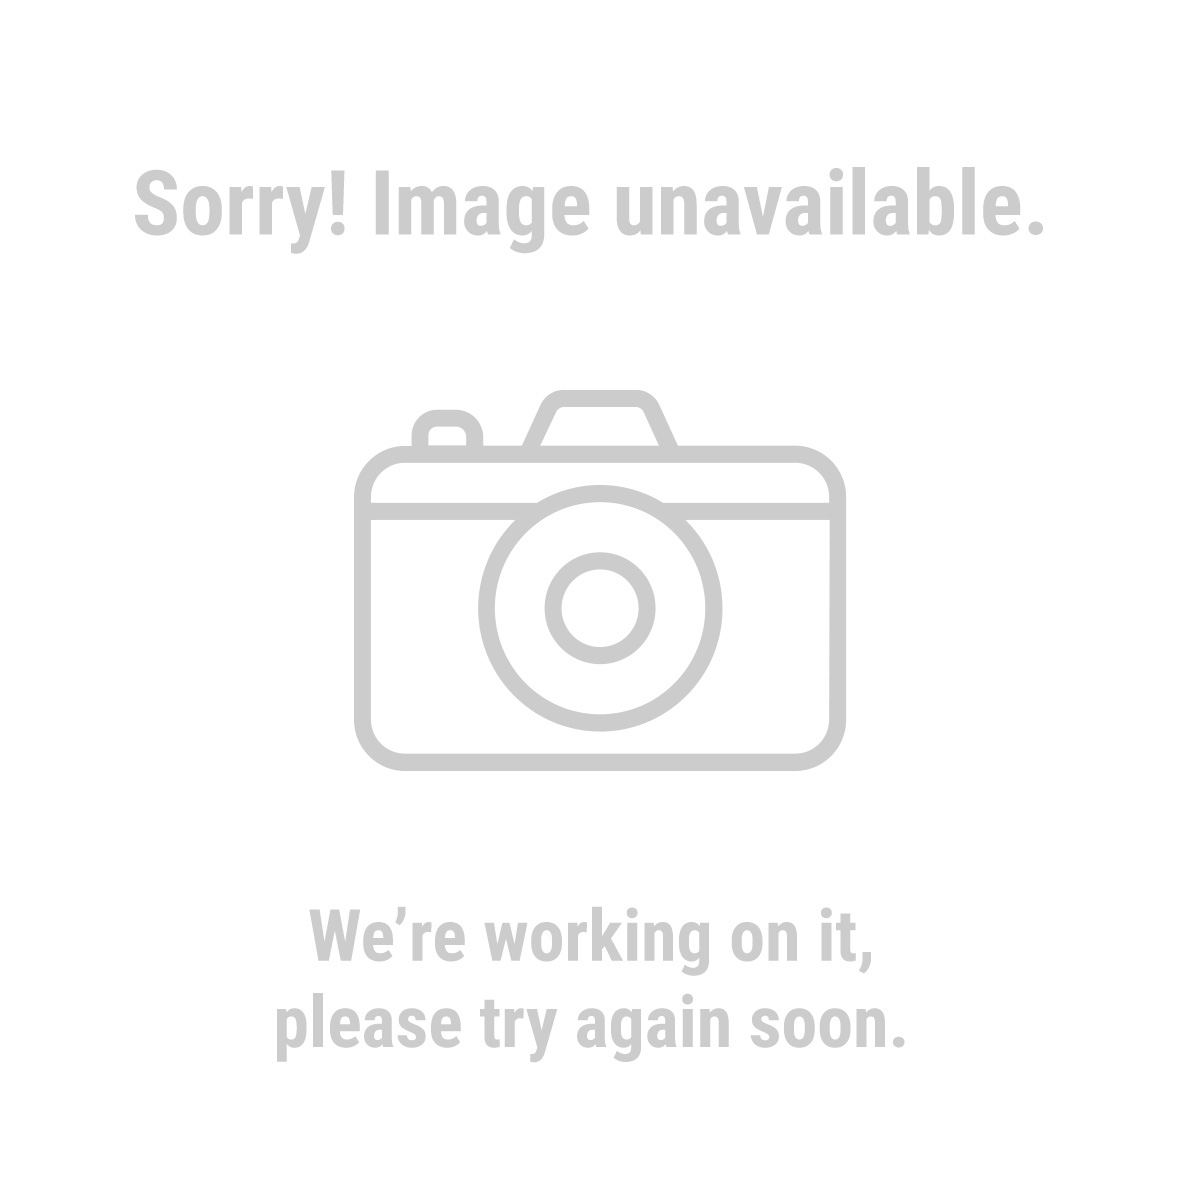 Warrior 60231 5 Piece 4-1/2 in. 36 Grit Resin Fiber Sanding Discs